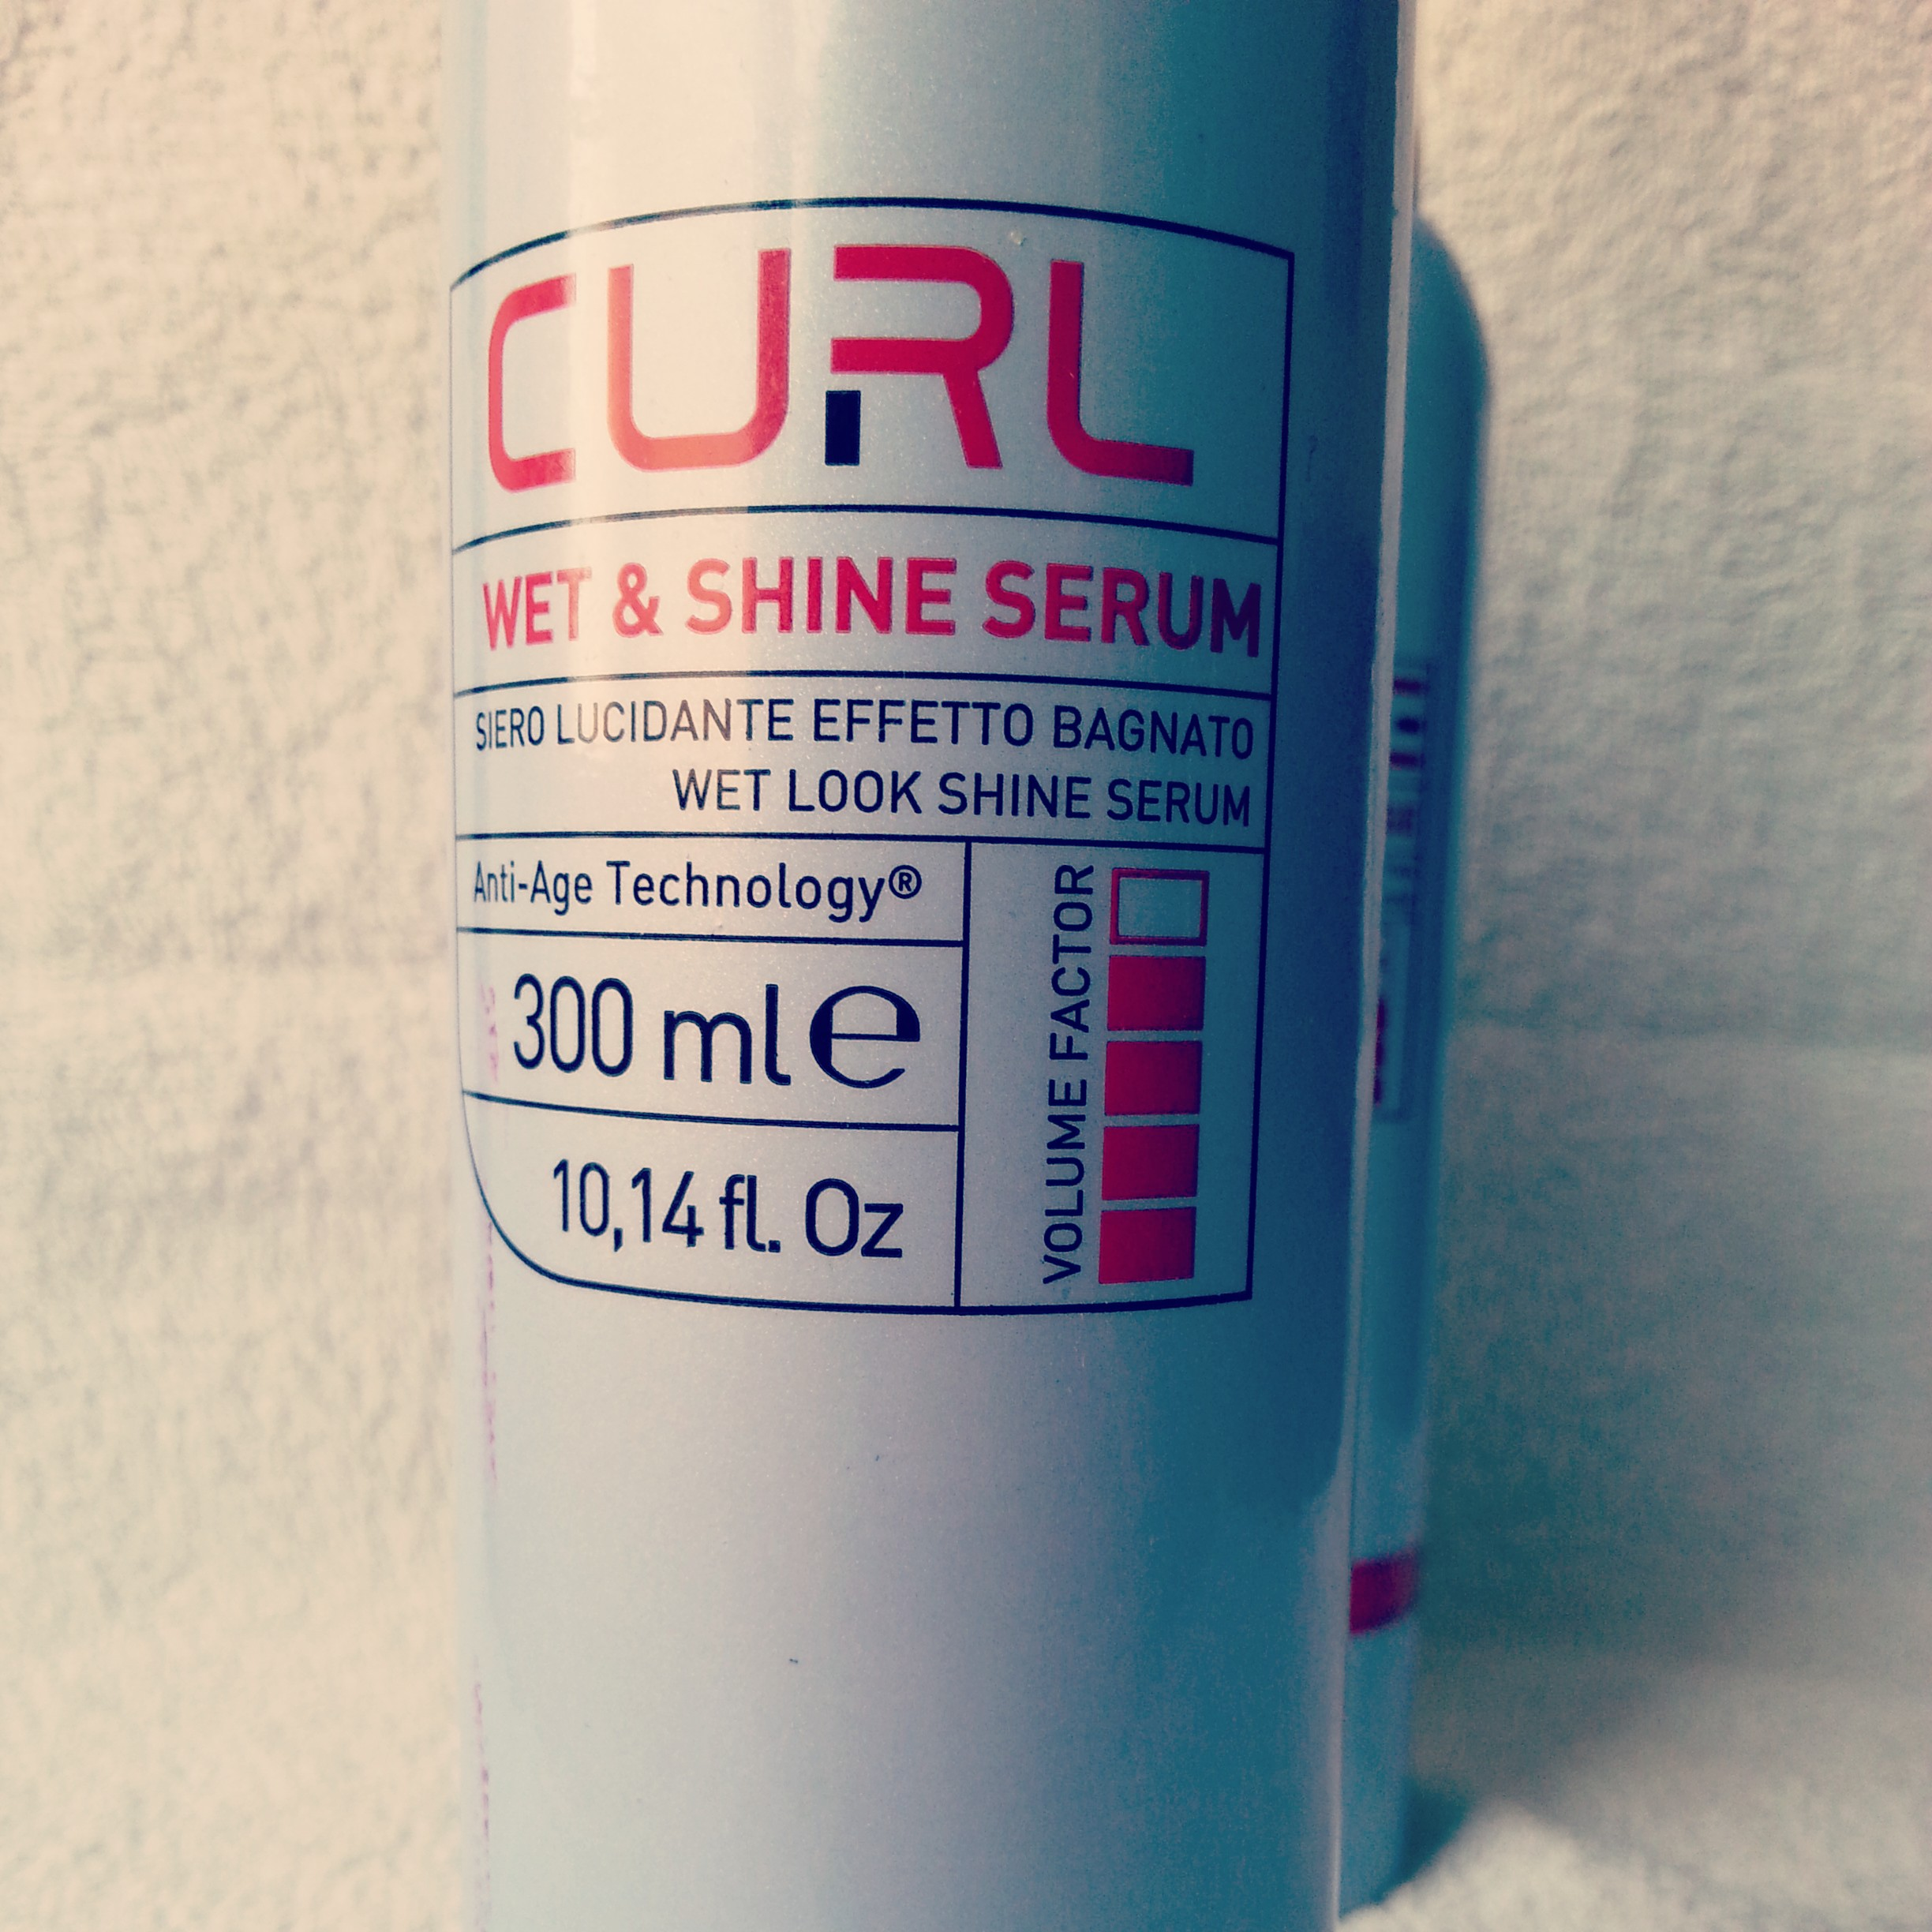 Greenlight curl wet & shine serum